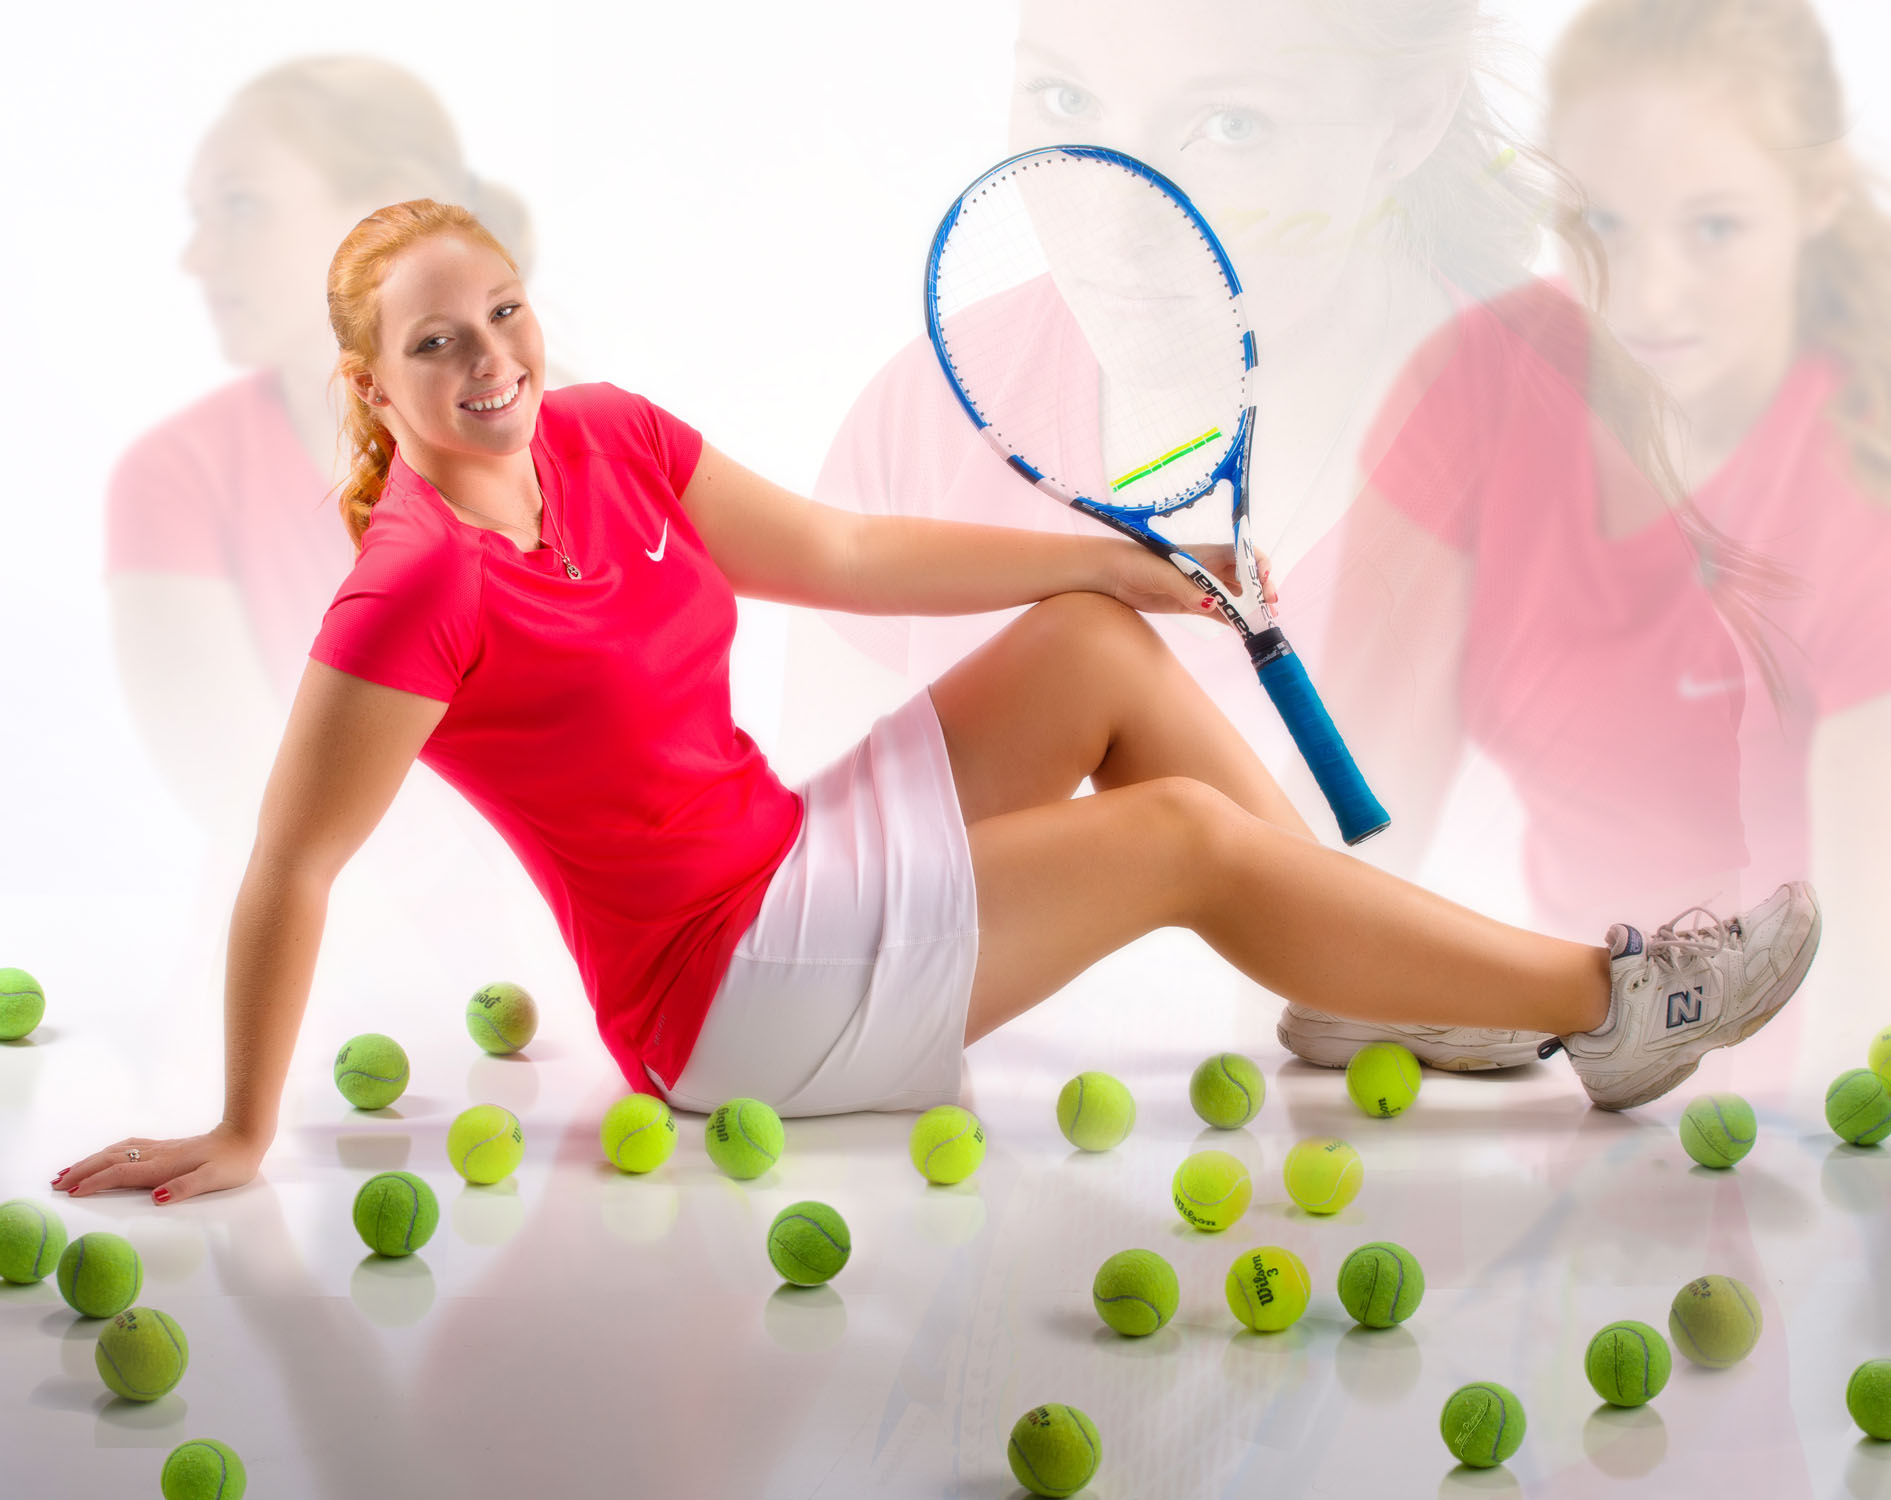 tennis poster of senior girl in portland photography studio